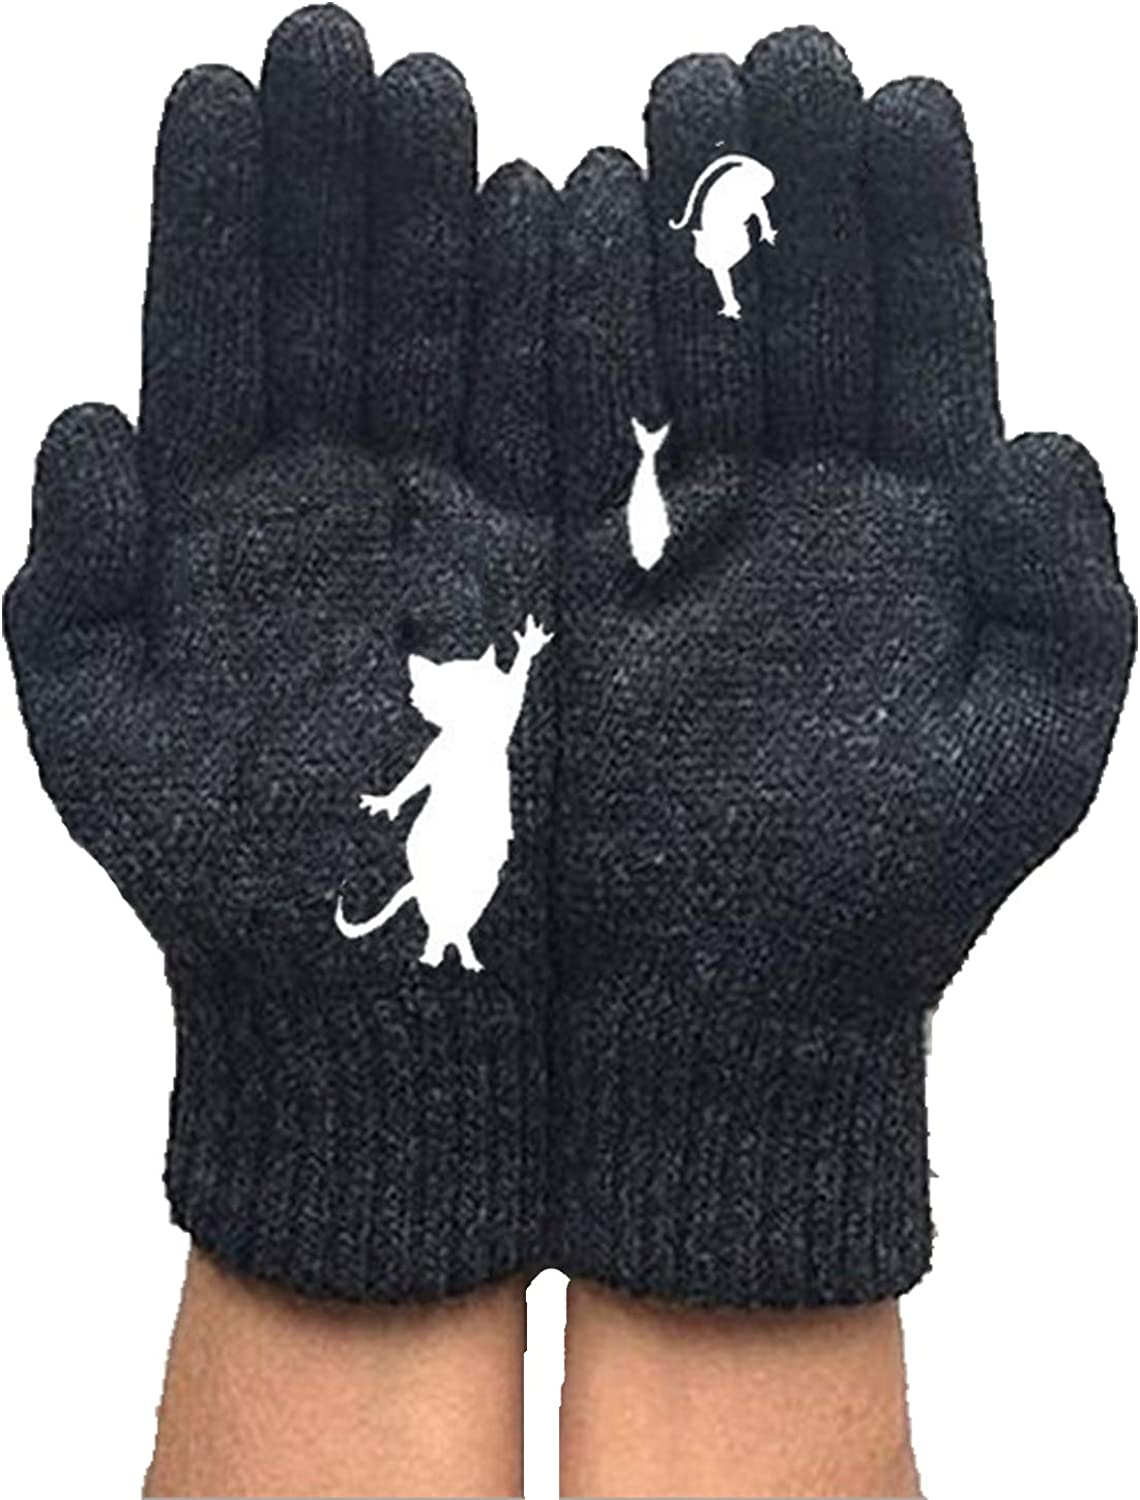 Cute Cat and Fish Winter Knit Thermal Gloves, Windproof Warm Mittens Glove for Women Men Teens